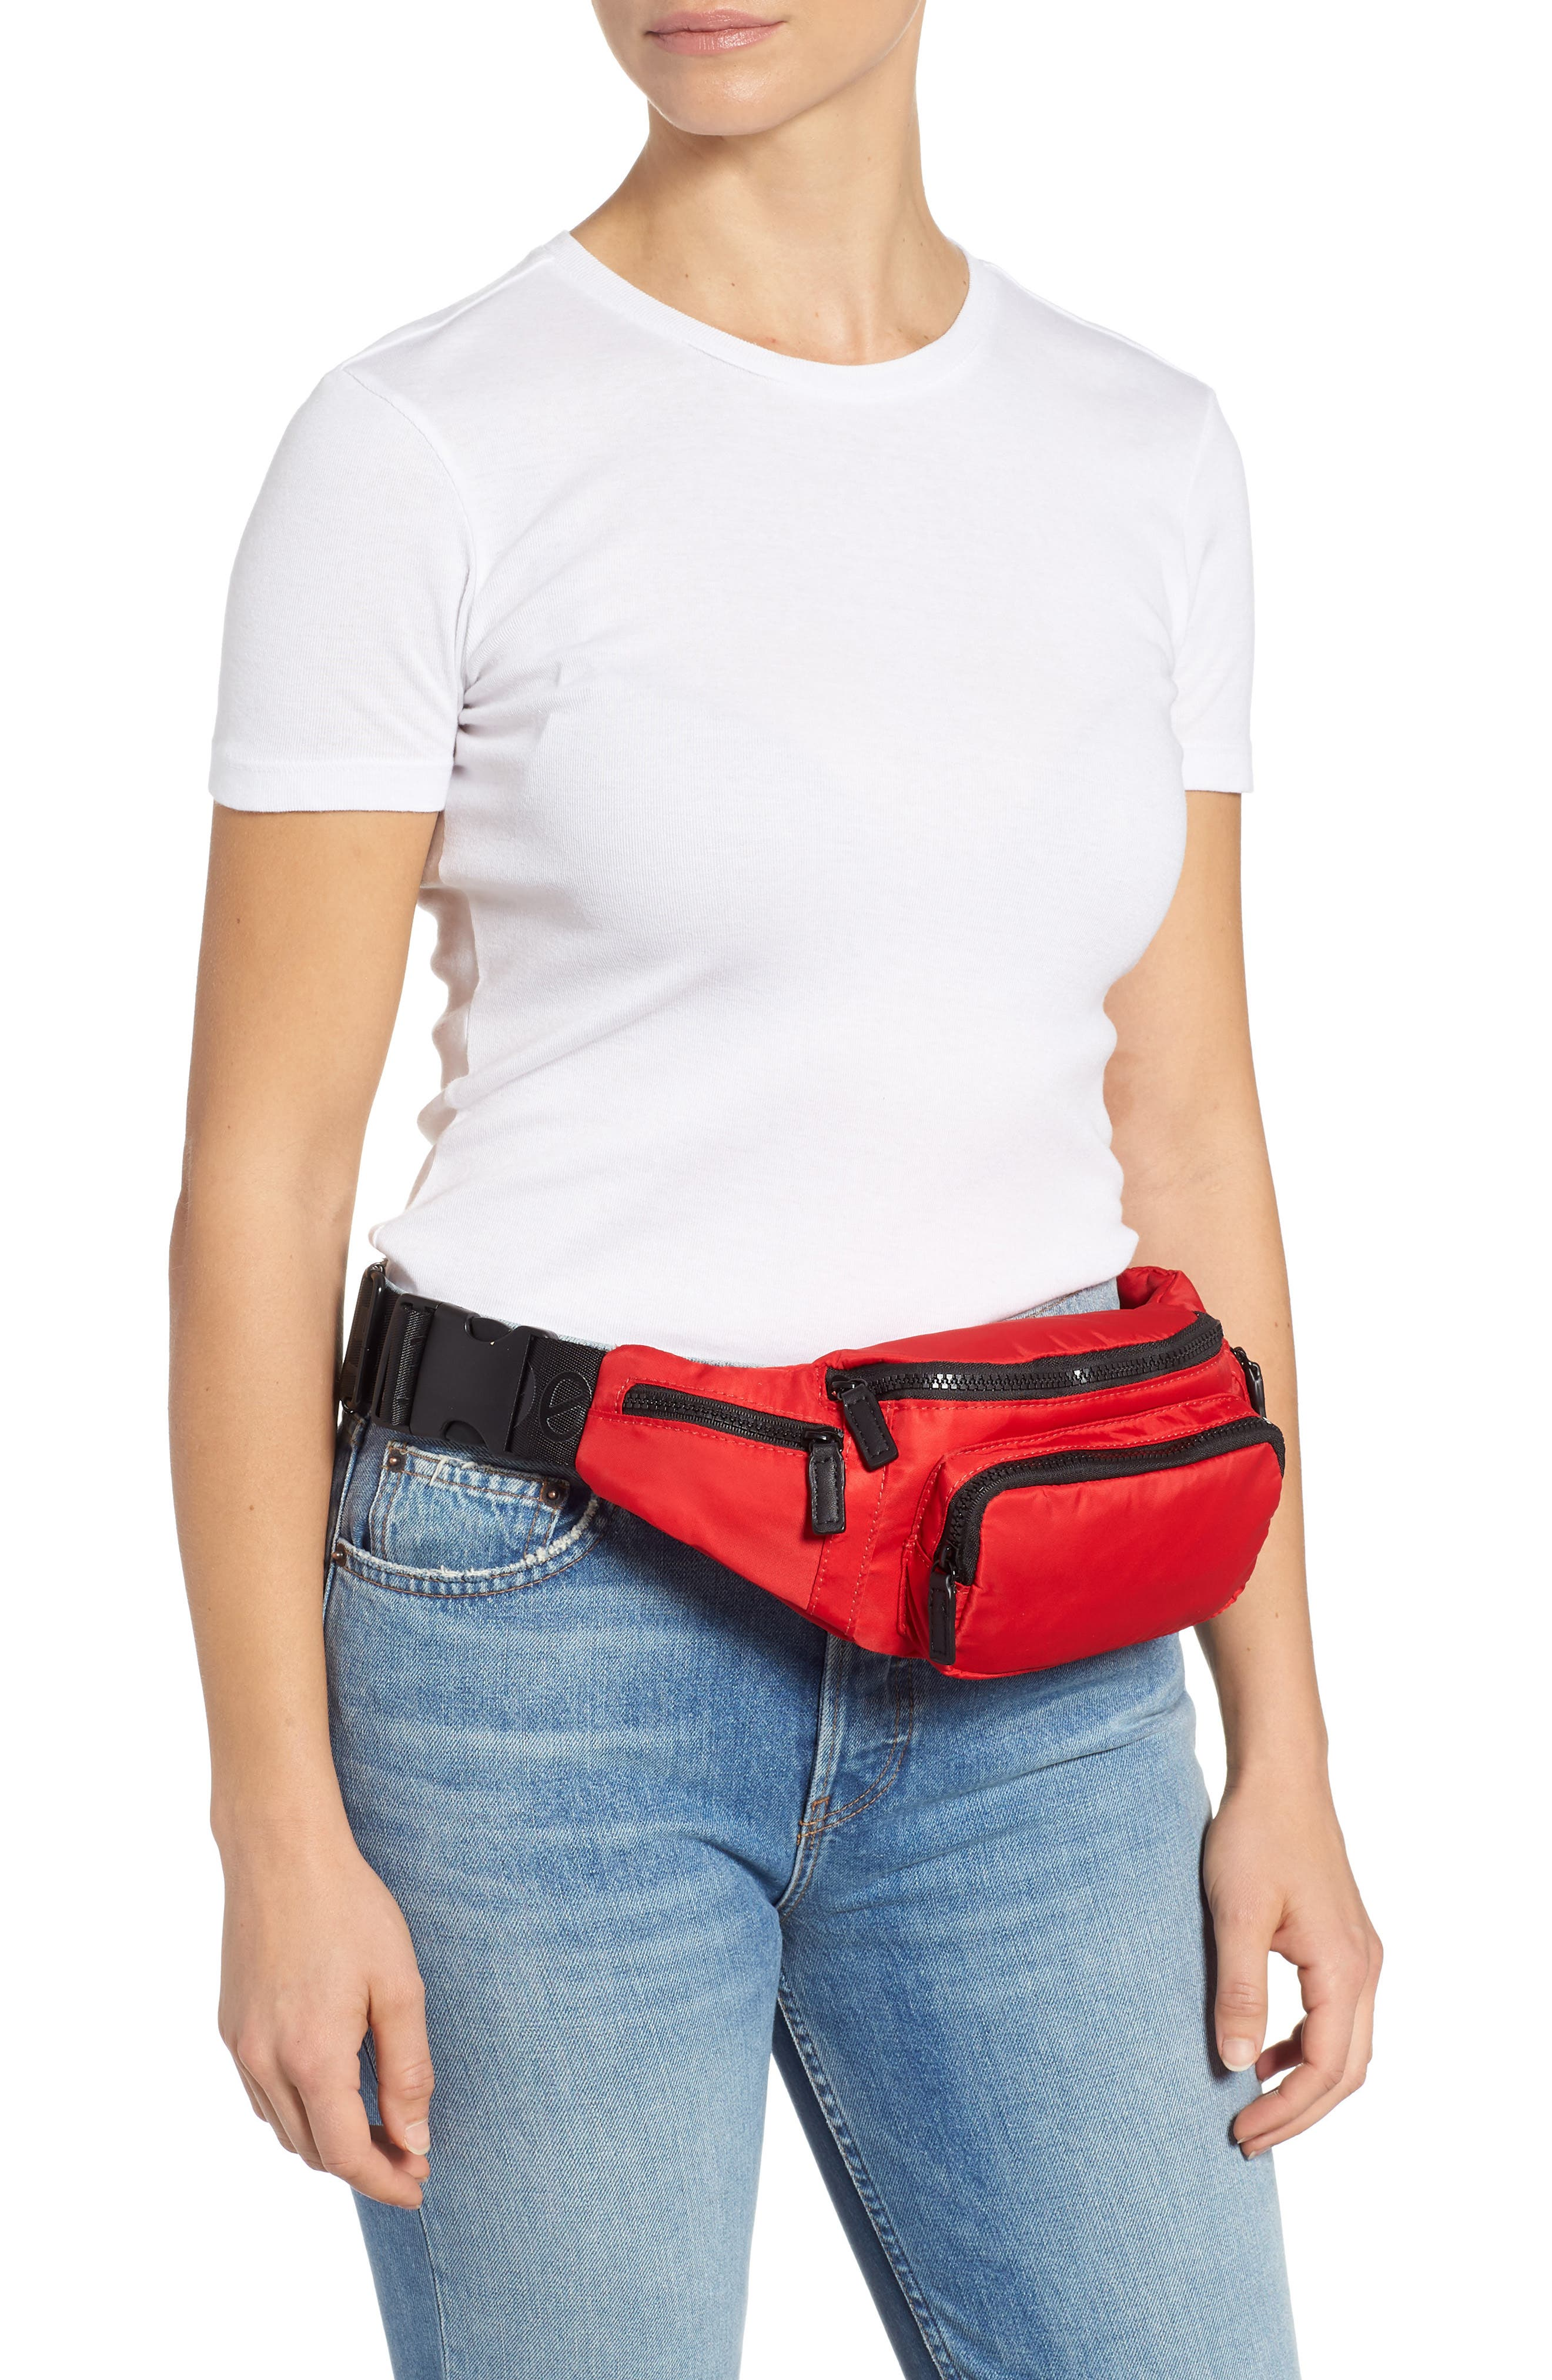 Tokyo Belt Bag,                             Alternate thumbnail 2, color,                             RED